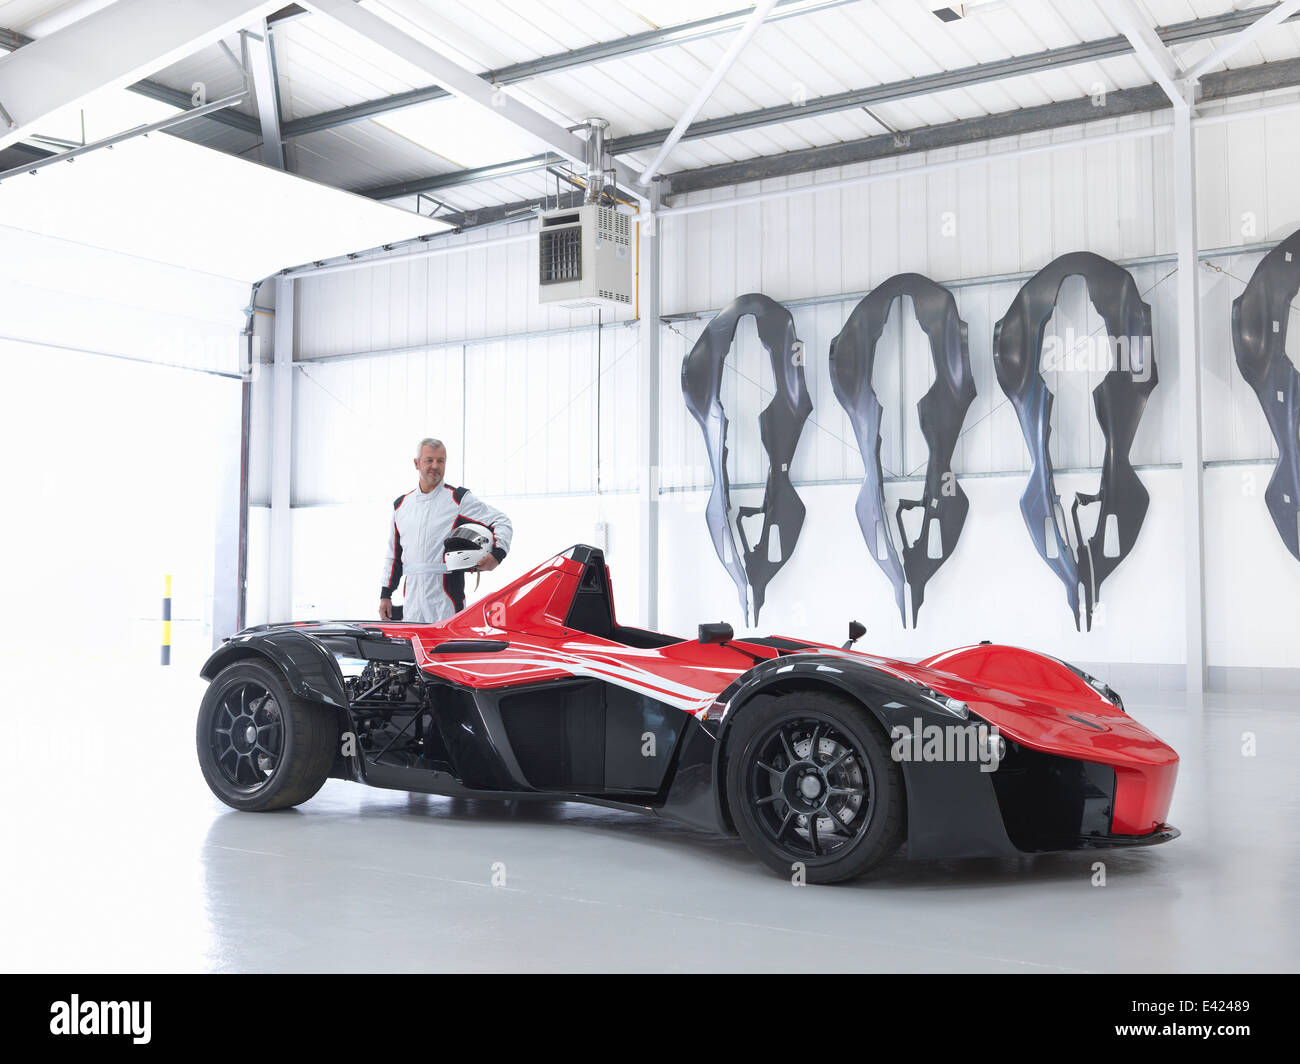 Racing driver with supercar in factory with carbon fibre car body shells on wall - Stock Image